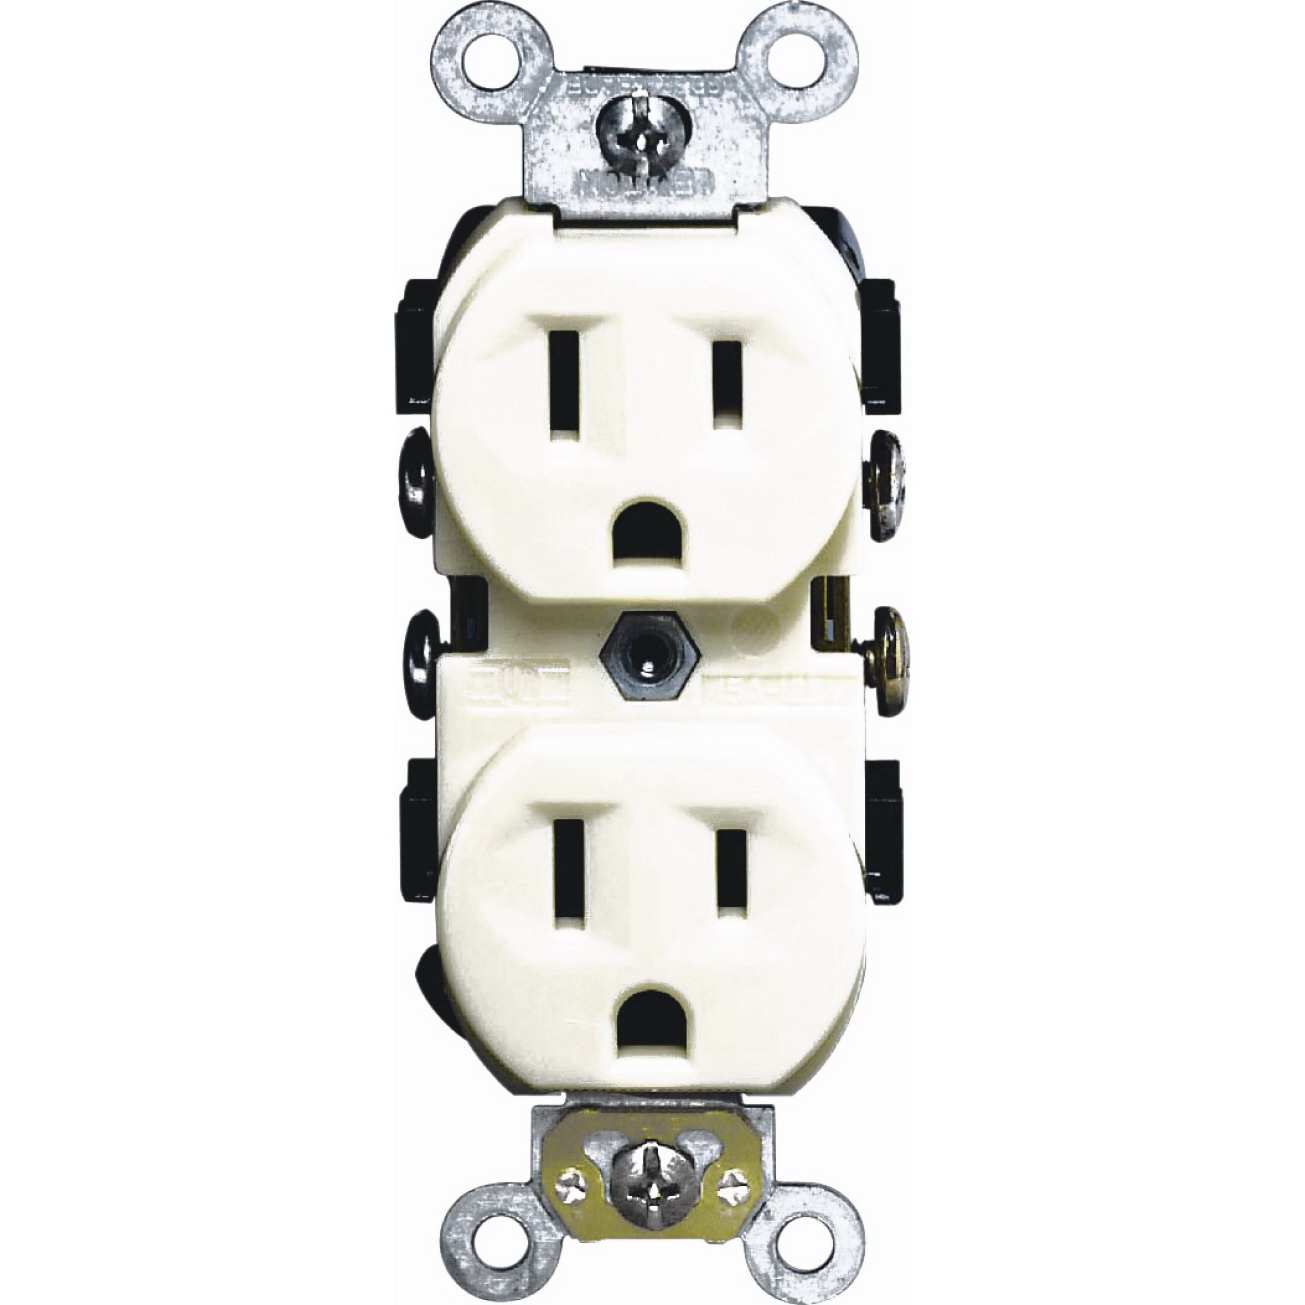 Leviton S01-0CR15-0IS Narrow Body Straight Blade Duplex Receptacle, 125 V, 15 A, 2 Pole, 3 Wire, Ivory